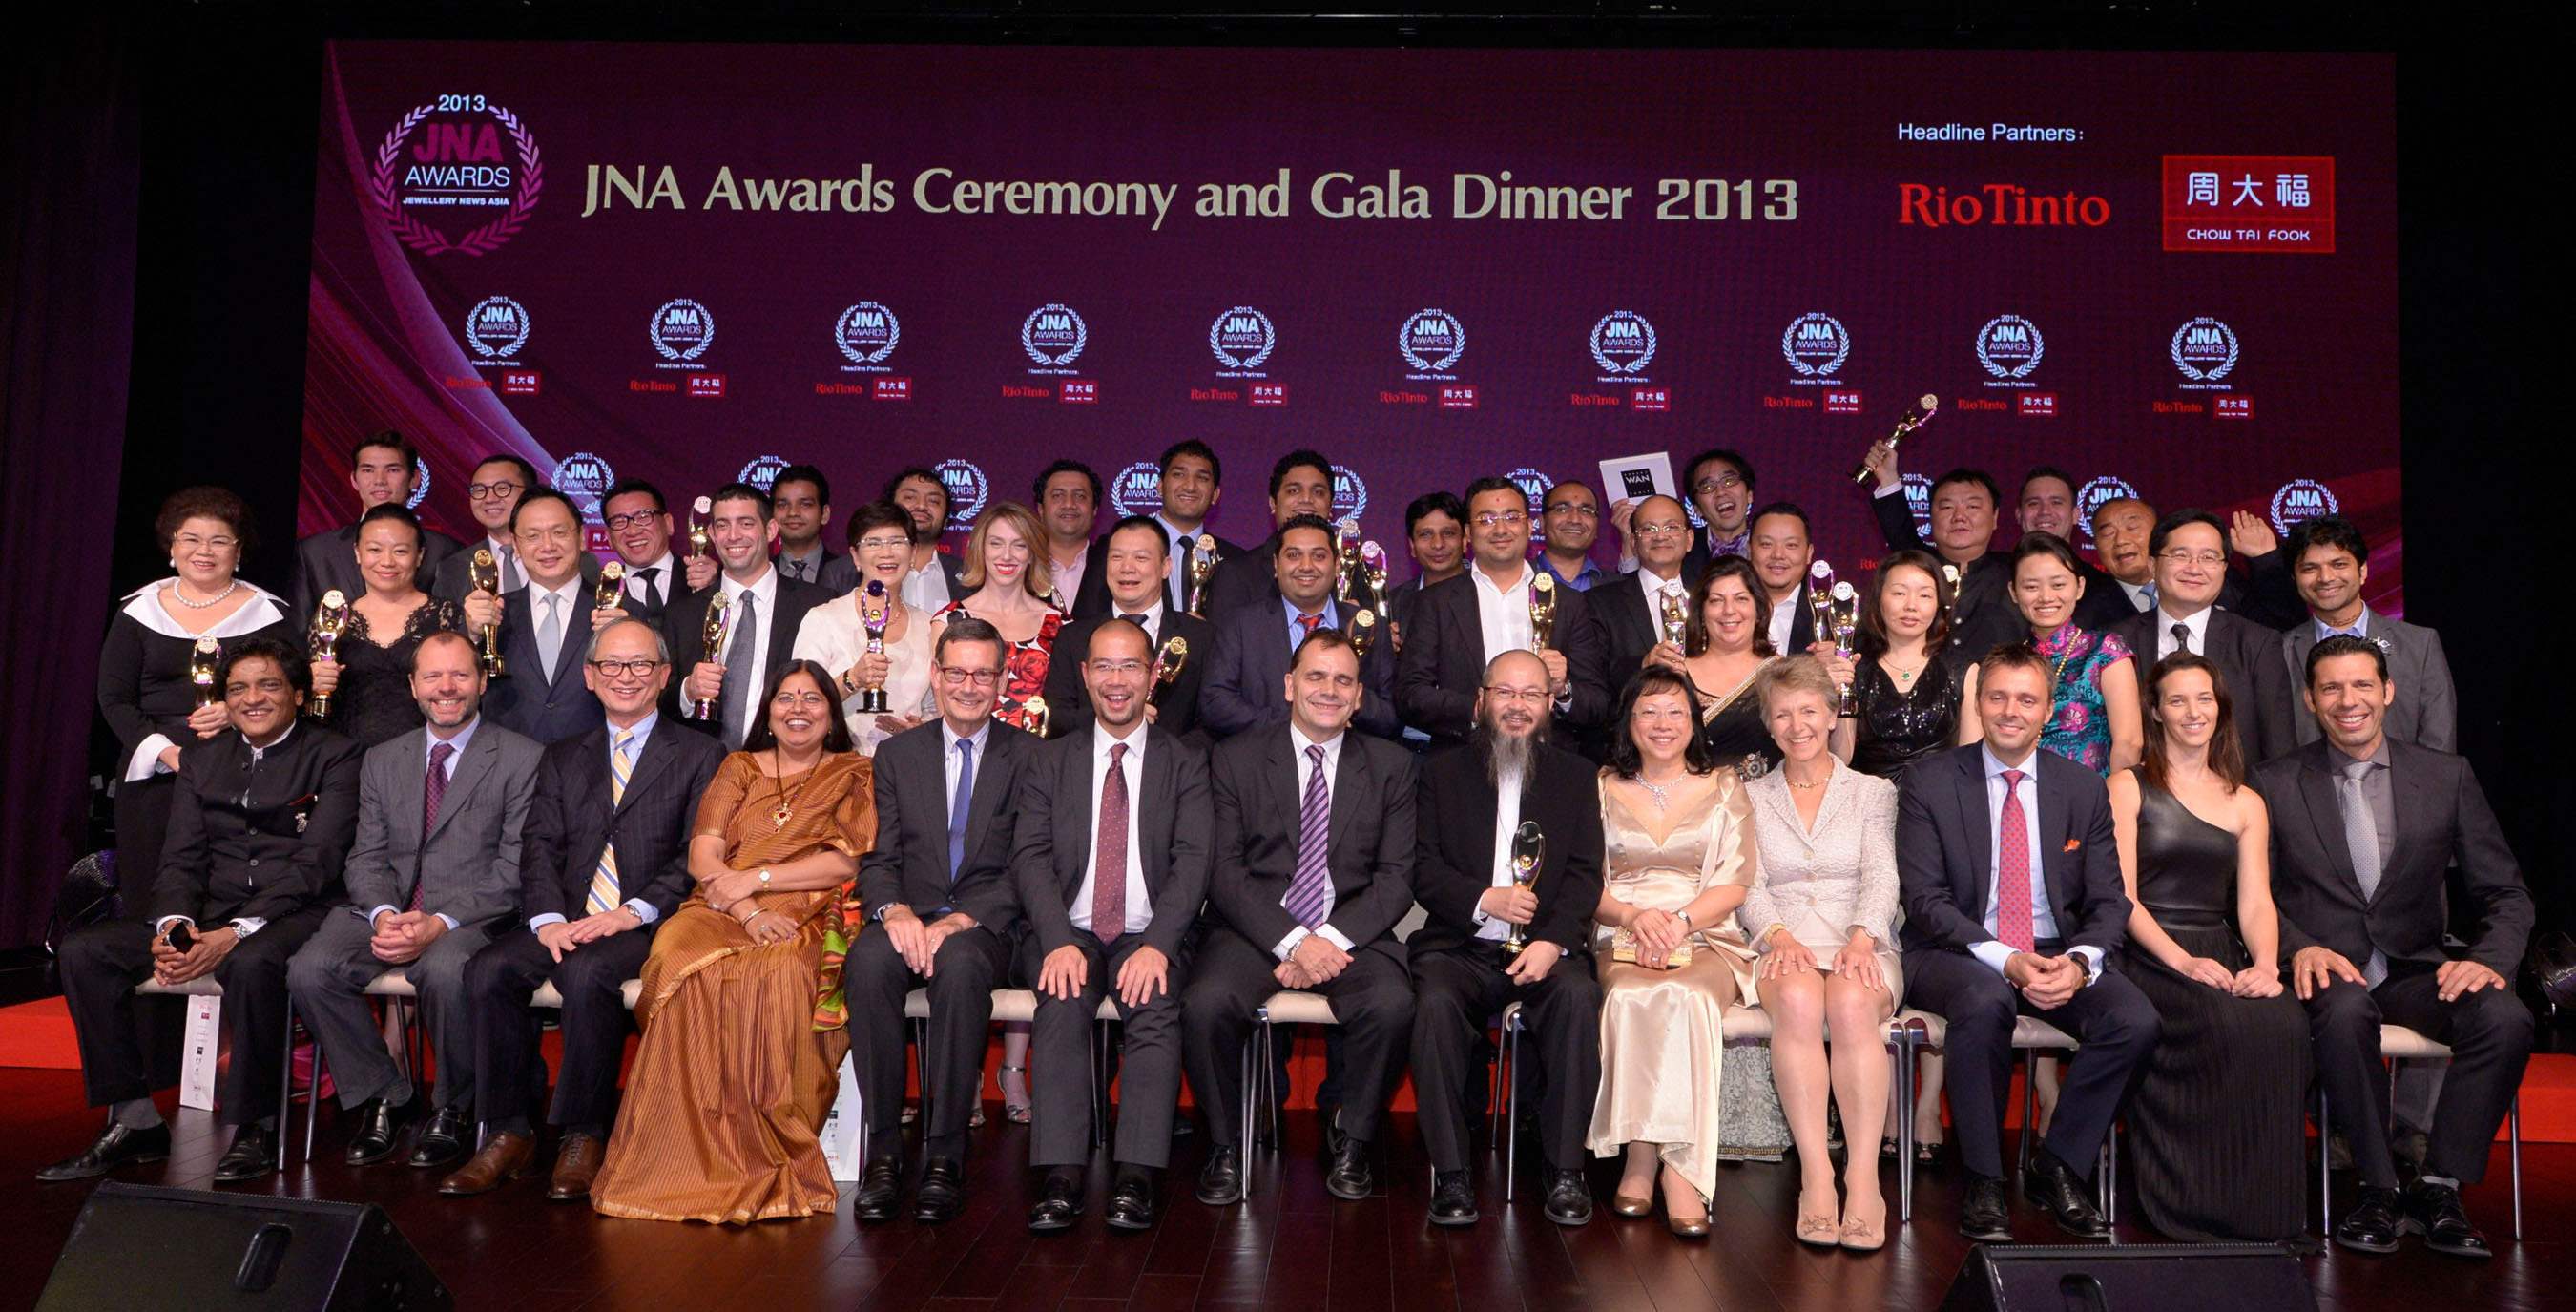 The JNA Awards honors the jewellery industry's leaders who represent excellence, innovation and success. (PRNewsFoto/UBM Asia Ltd) (PRNewsFoto/UBM ASIA LTD)